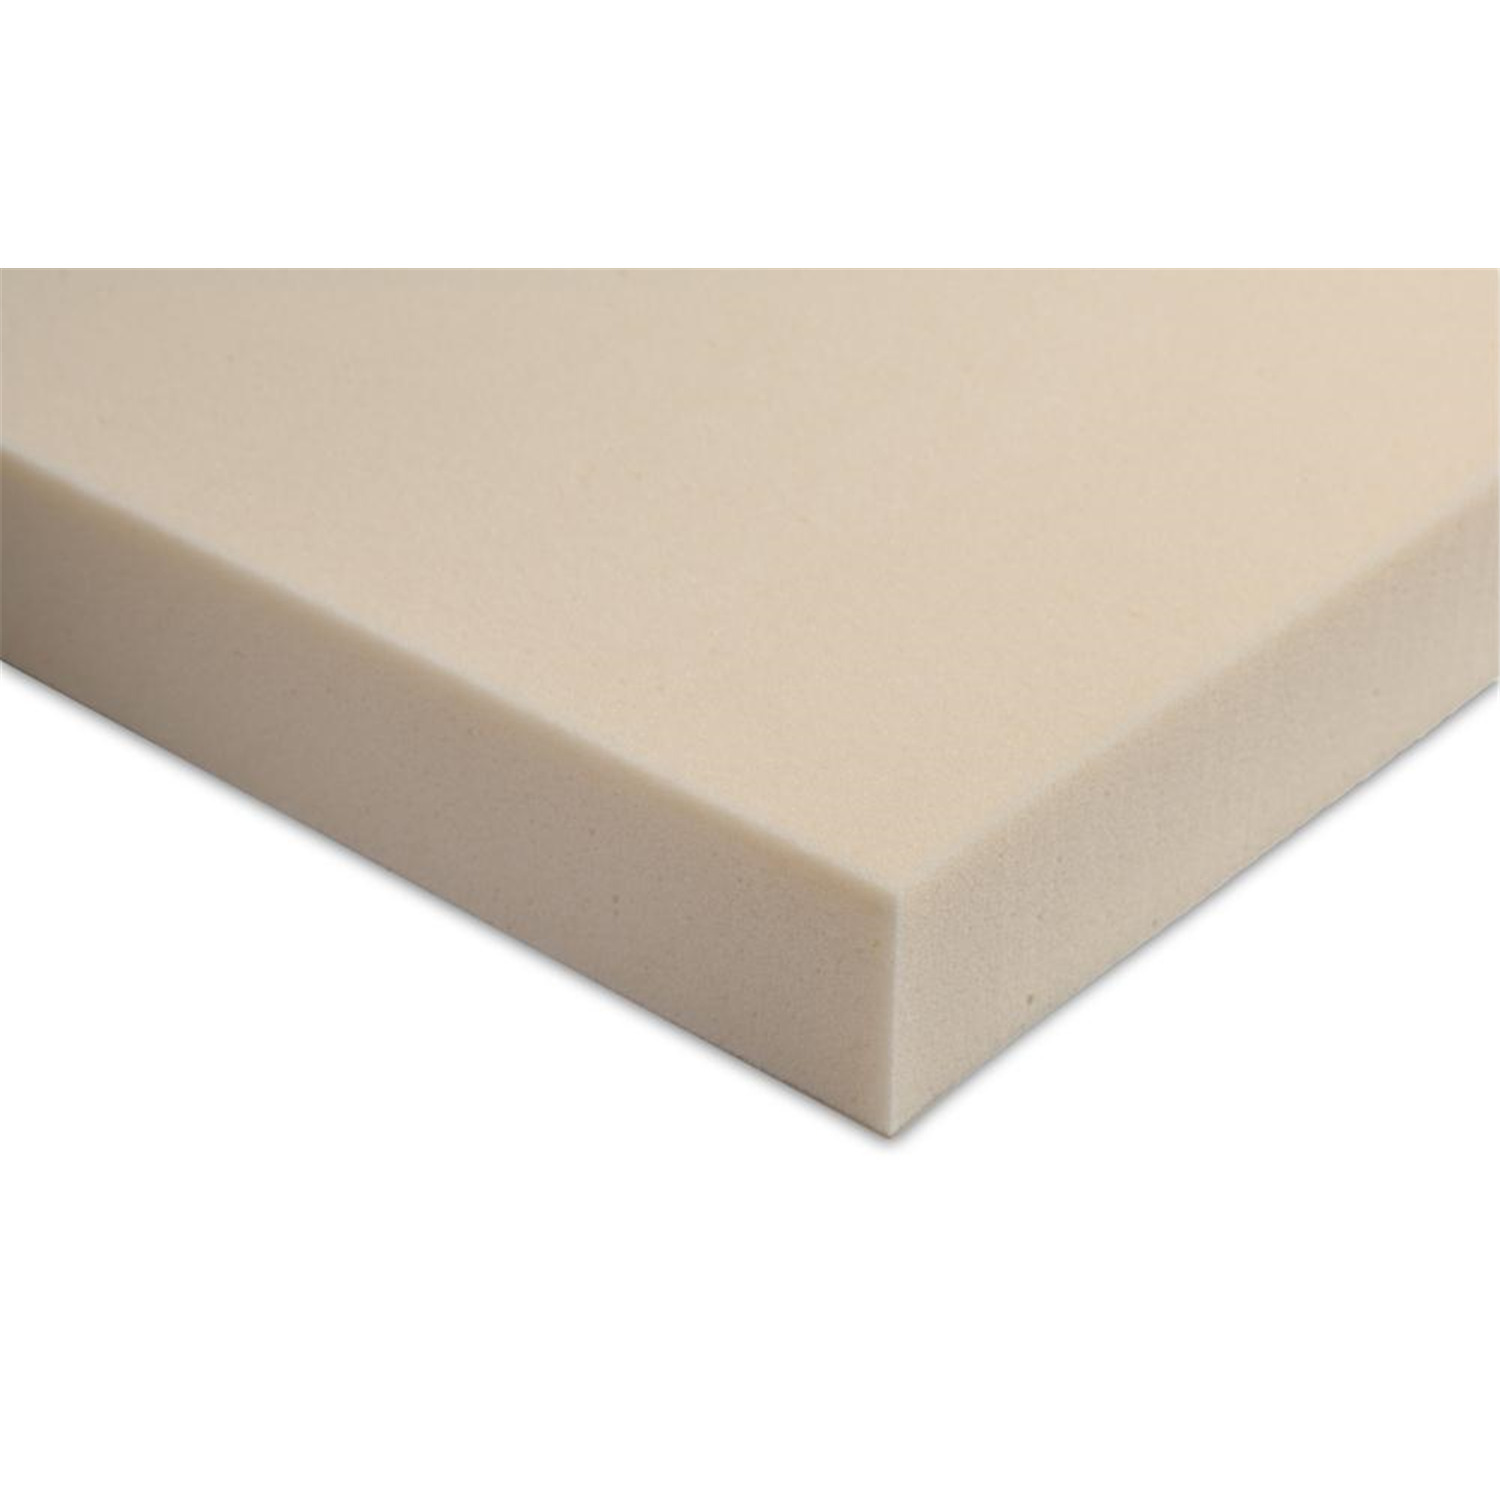 Latex foam mattress pads best naked ladies Top rated memory foam mattress